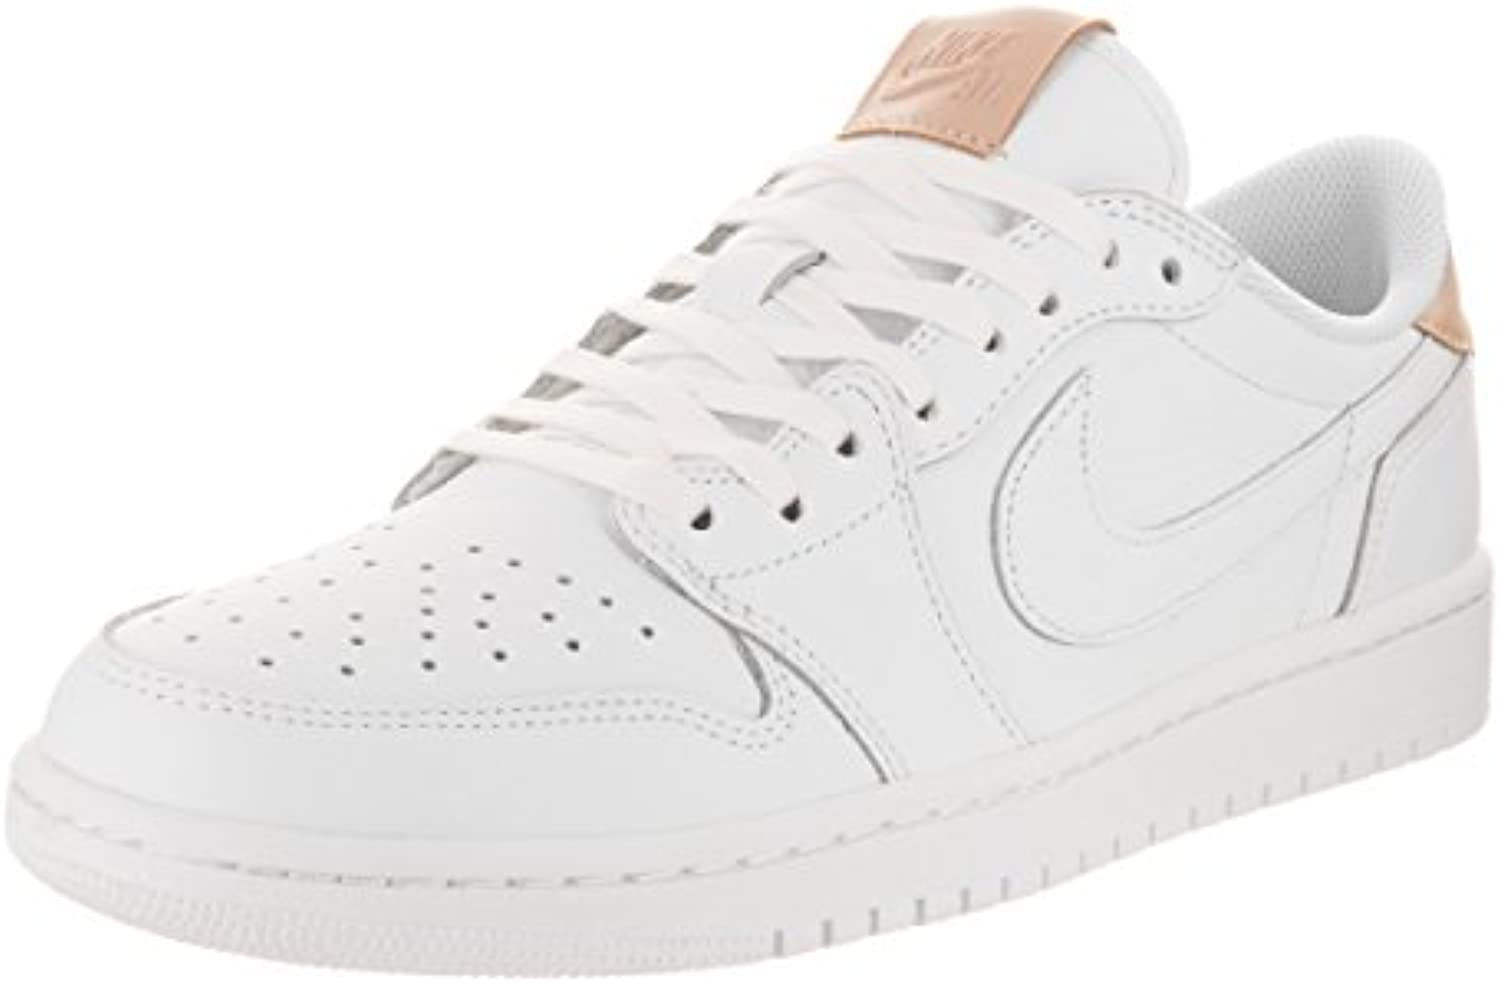 Nike Air Jordan 1 Retro Low OG Premium   905136 100